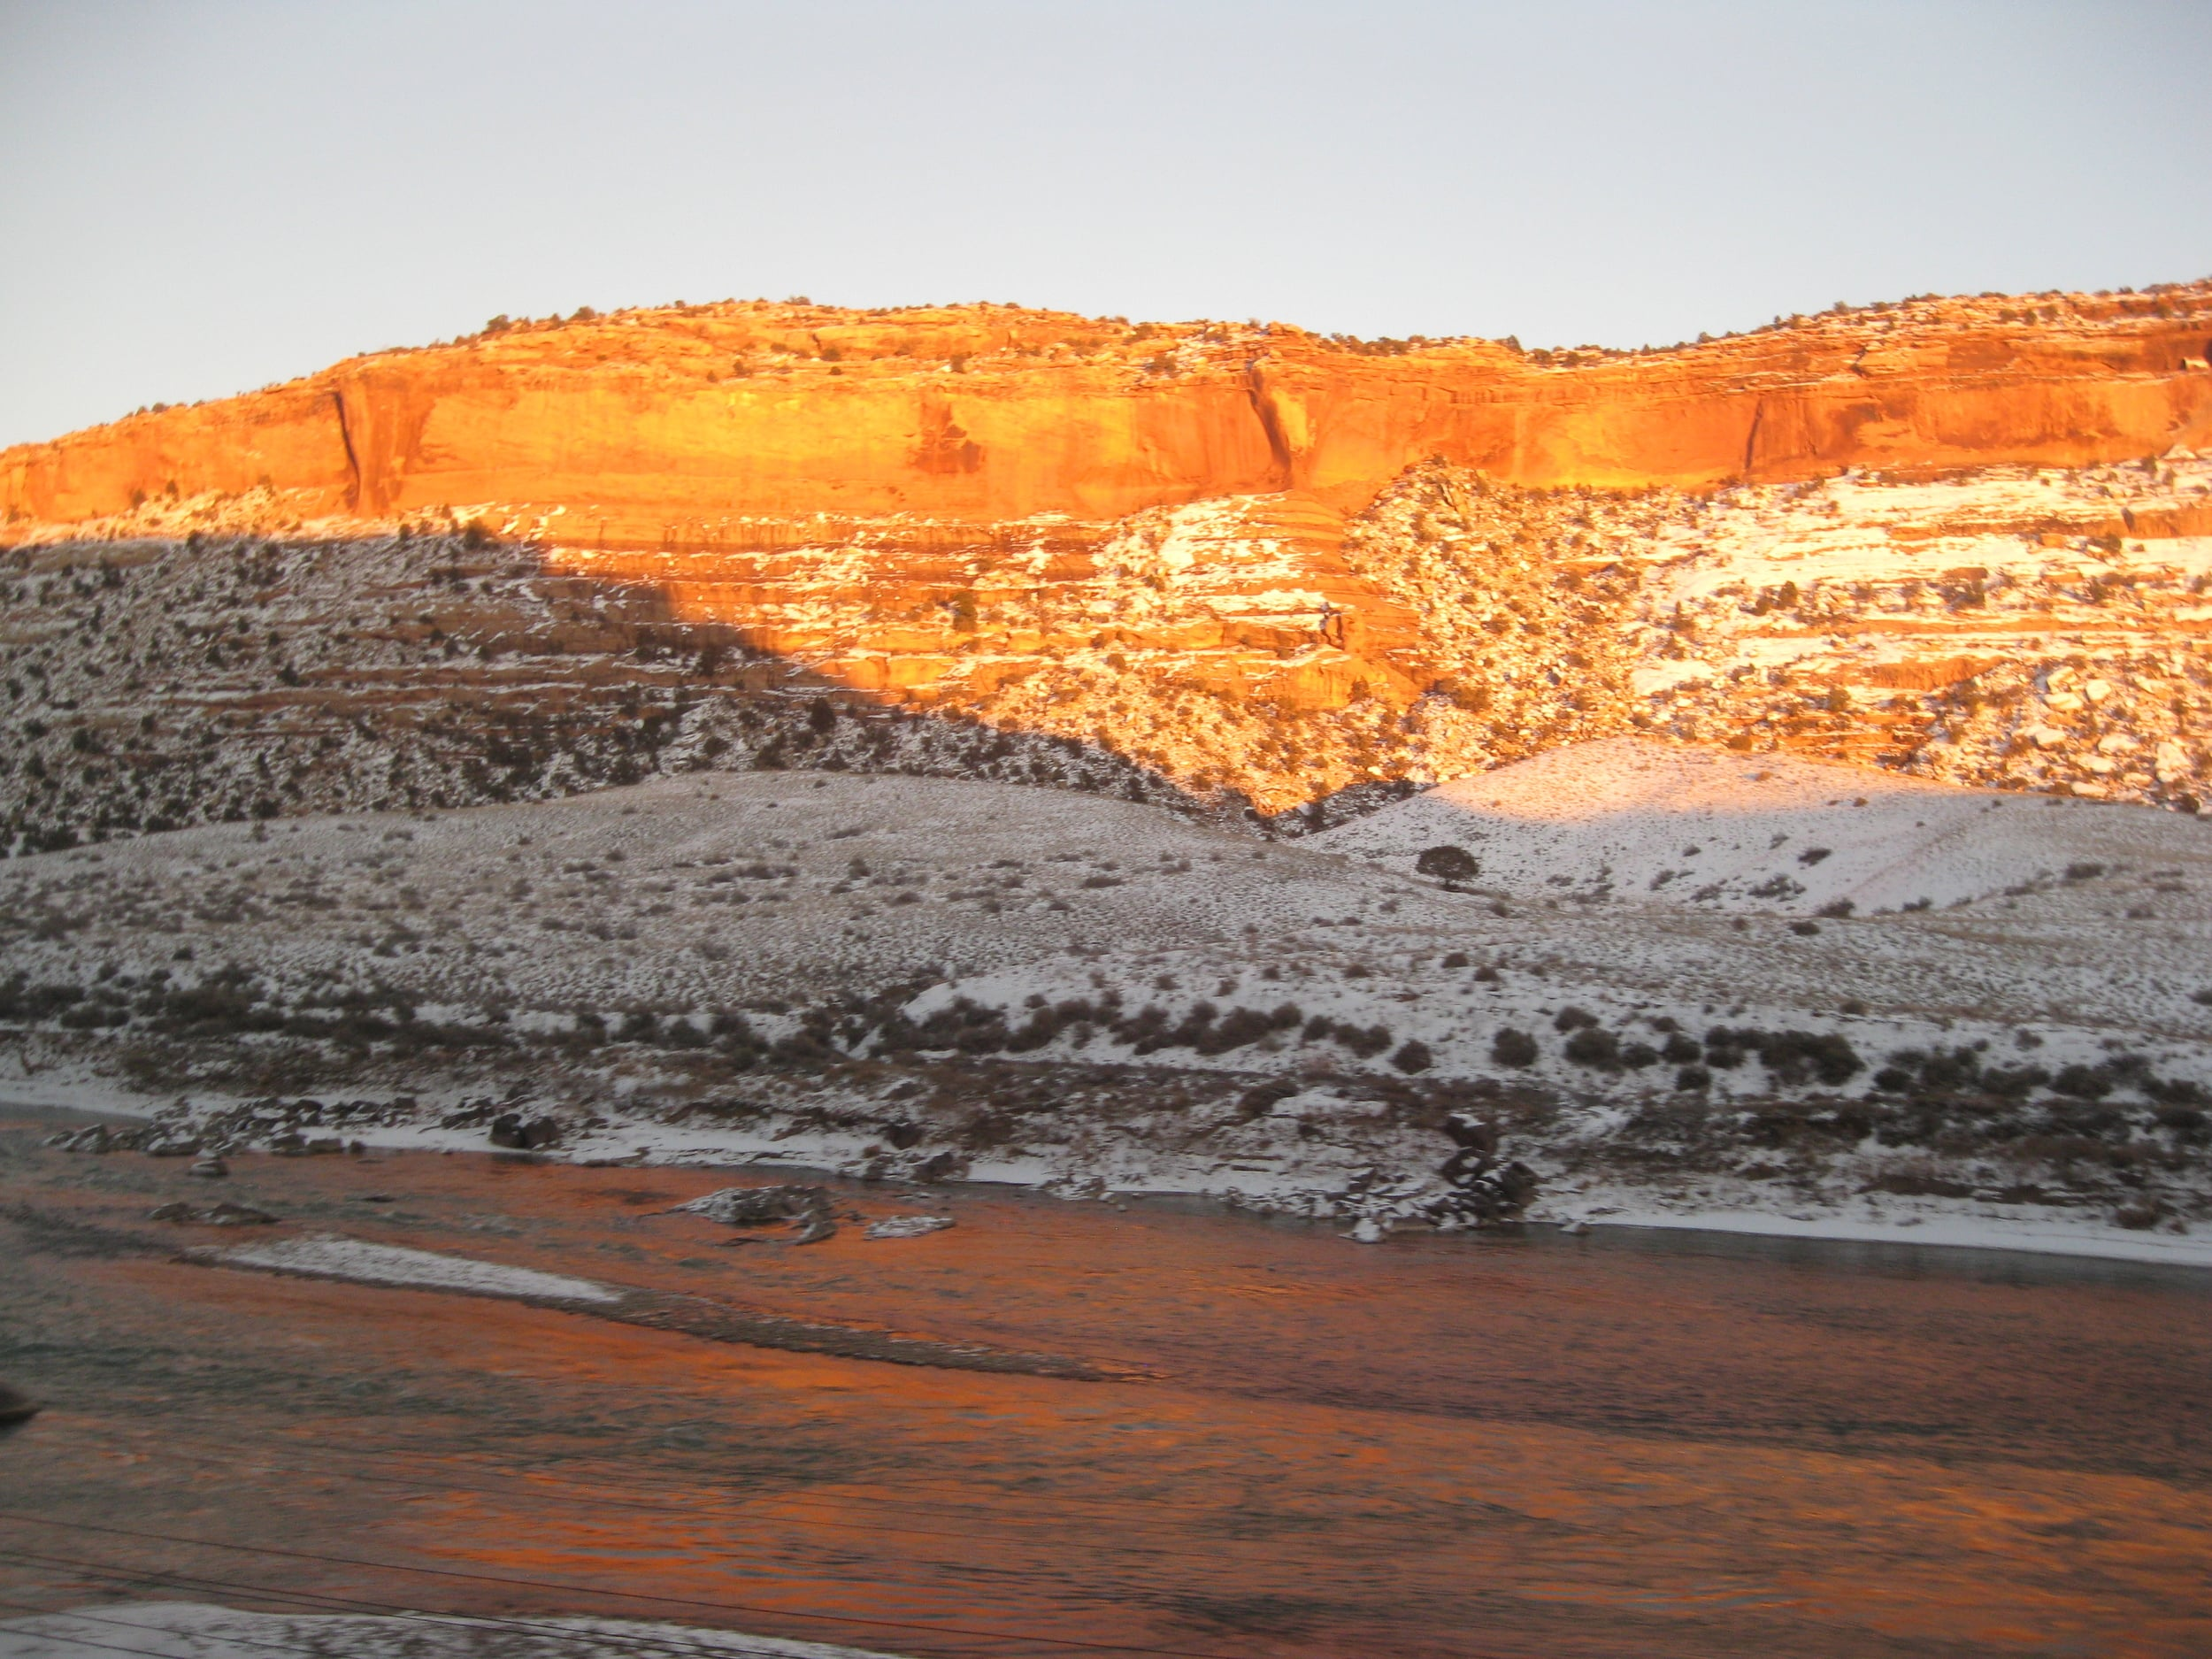 Utah's Ruby Canyon is a geological wonder and an amazing cacophony of color at sunset. Photo by Steve Newvine